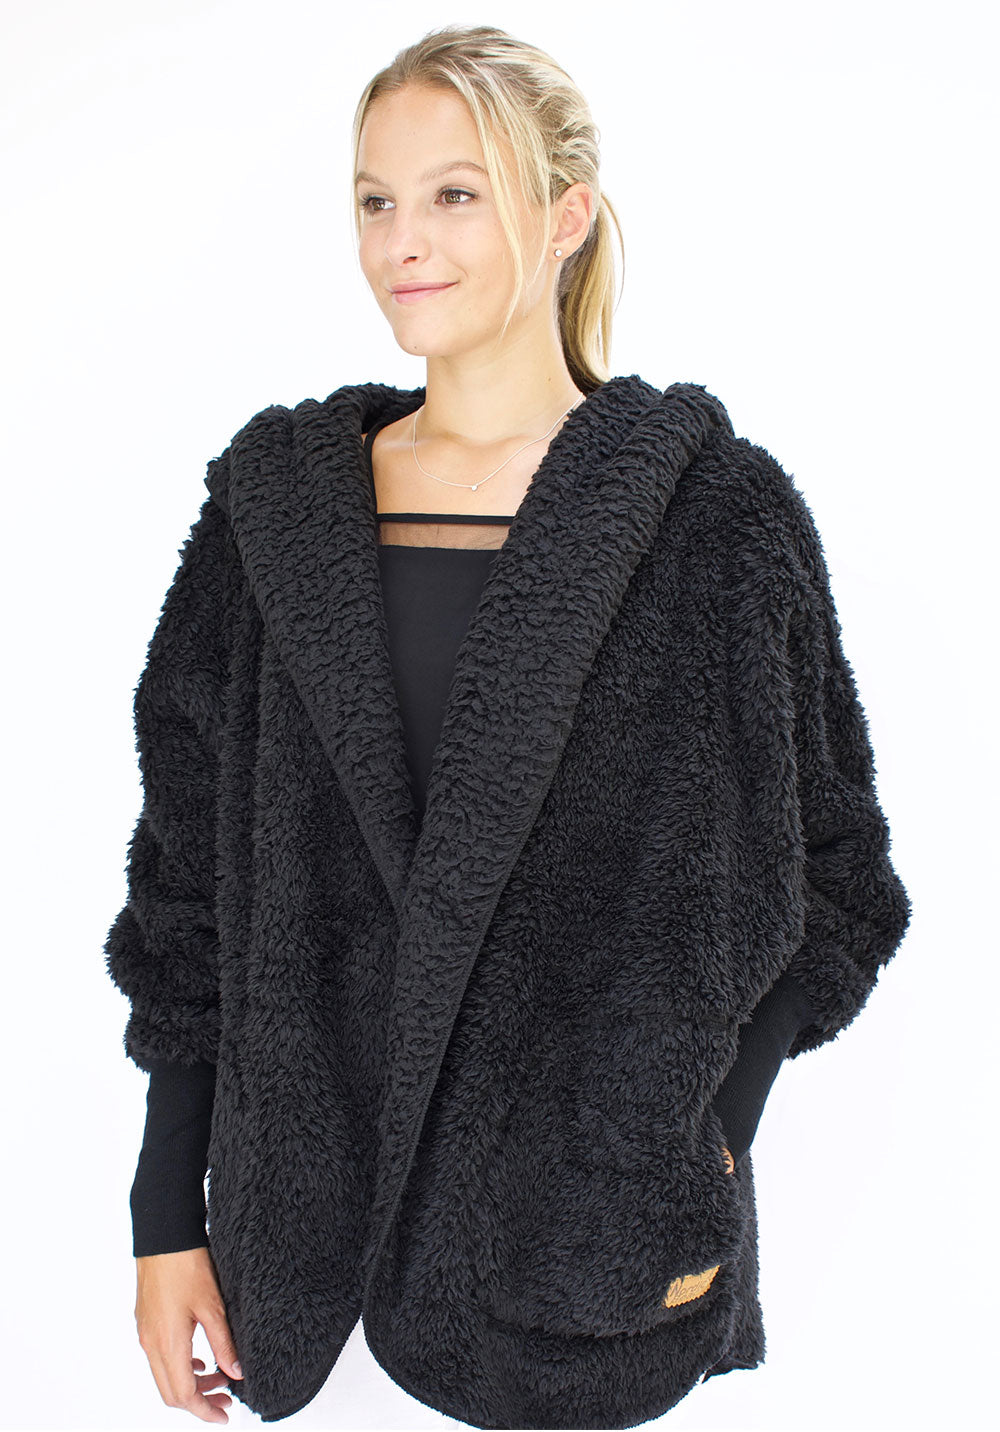 Nordic Beach Cozy Cardigan